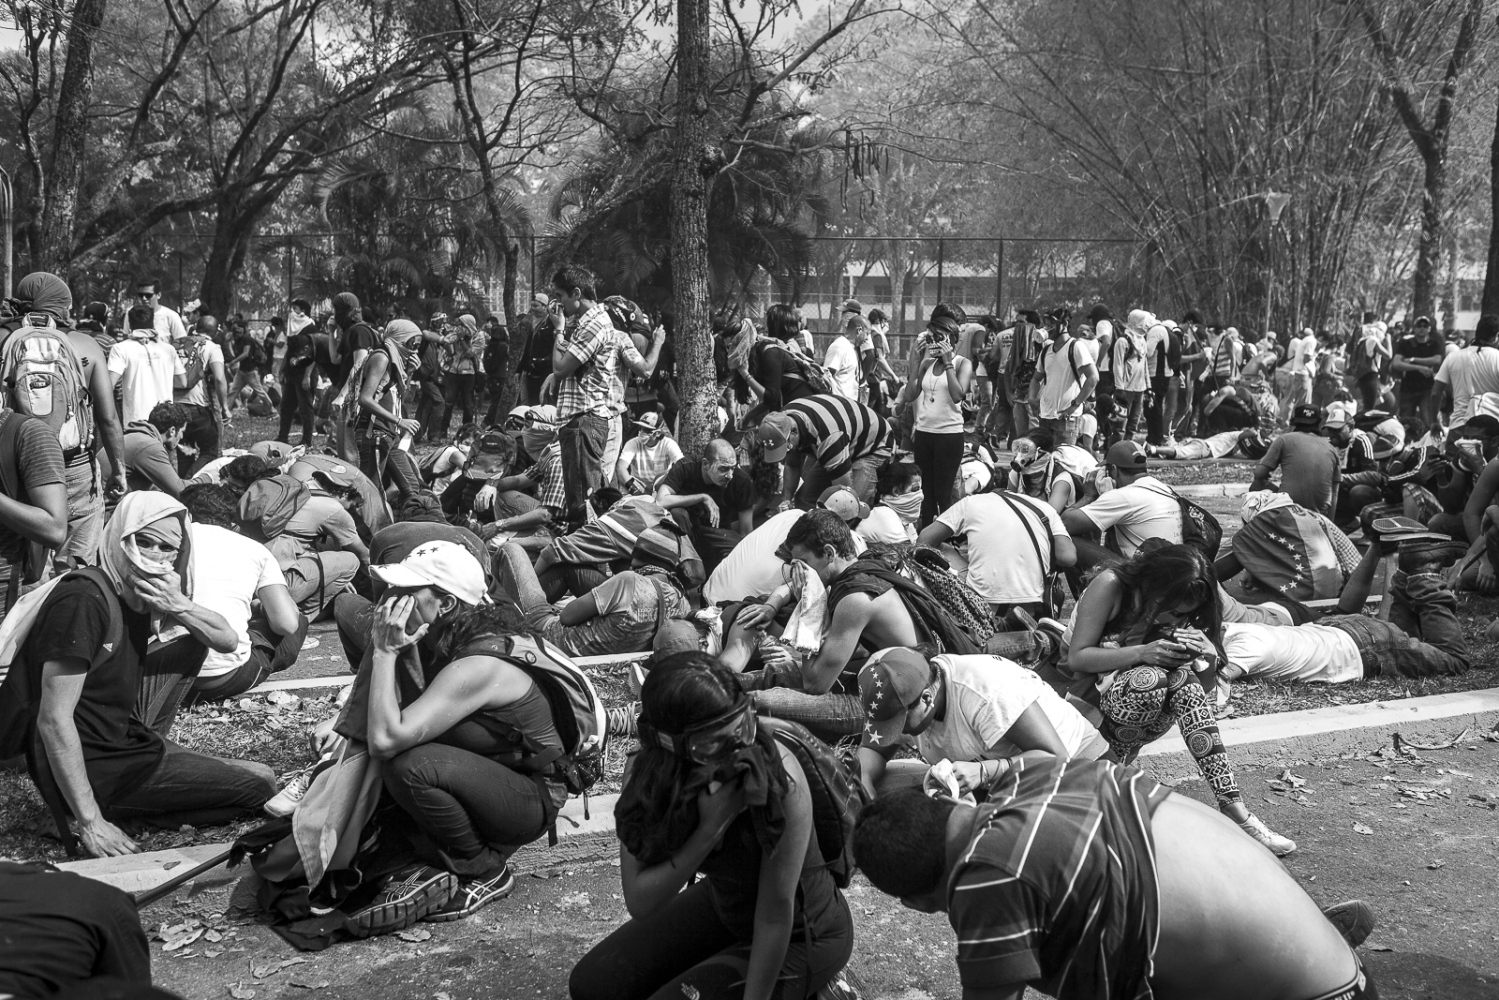 Students try to lay low to protect themselfs from the tear gas during the confronts with the Bolivarian National Police (PNB) in the Central University of Caracas (UCV), 12th March 2014. The demontrations and confronts started on February 12th, and caused 42 dead, hundreds of injured and 1030 detained during the two month protests against the Government of President Nicolas Maduro.